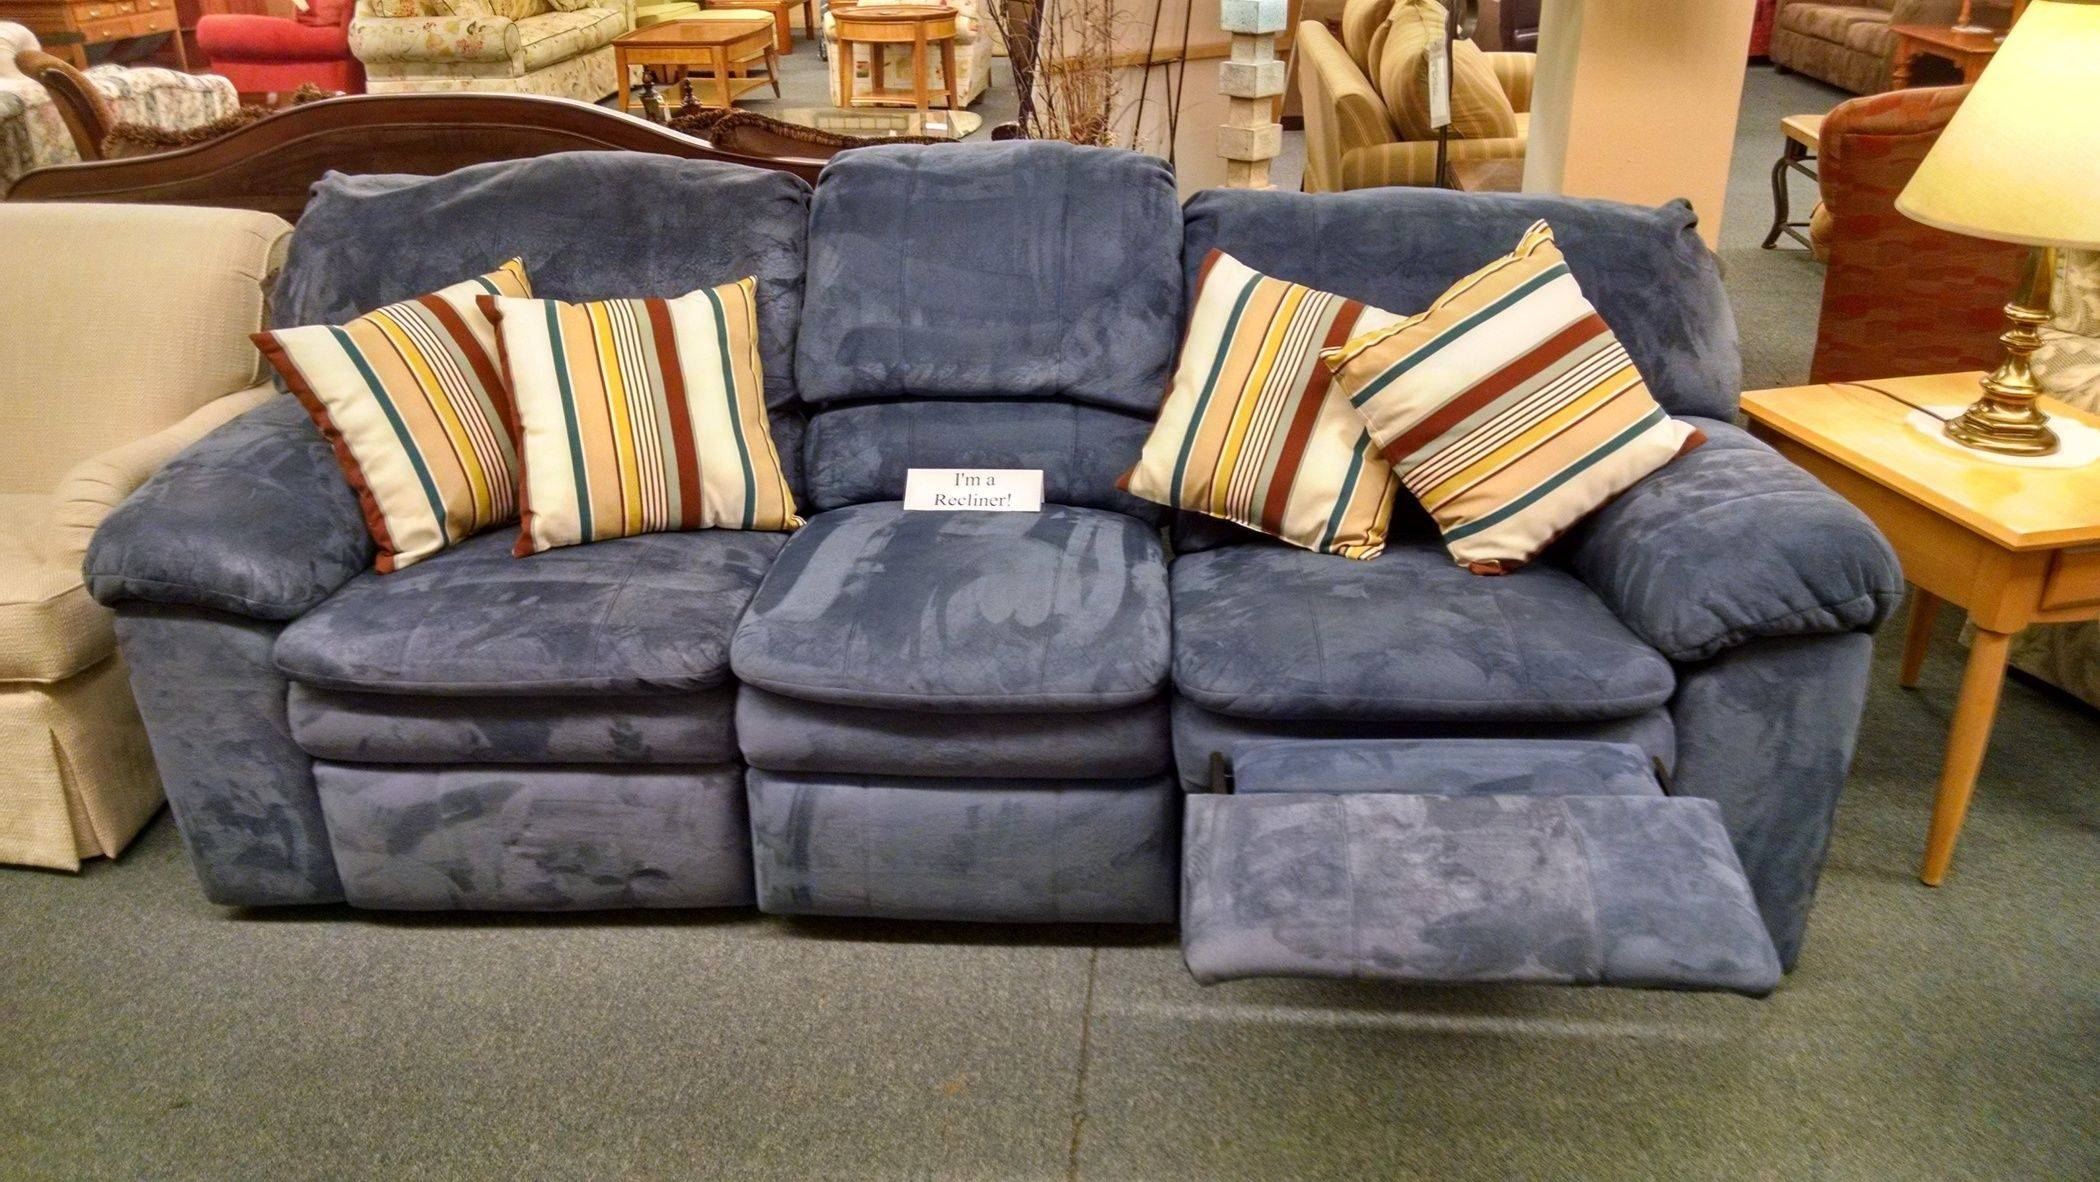 and couch pull out furniture loveseat set reclining parts sofa chair brown leather sleeper berkline